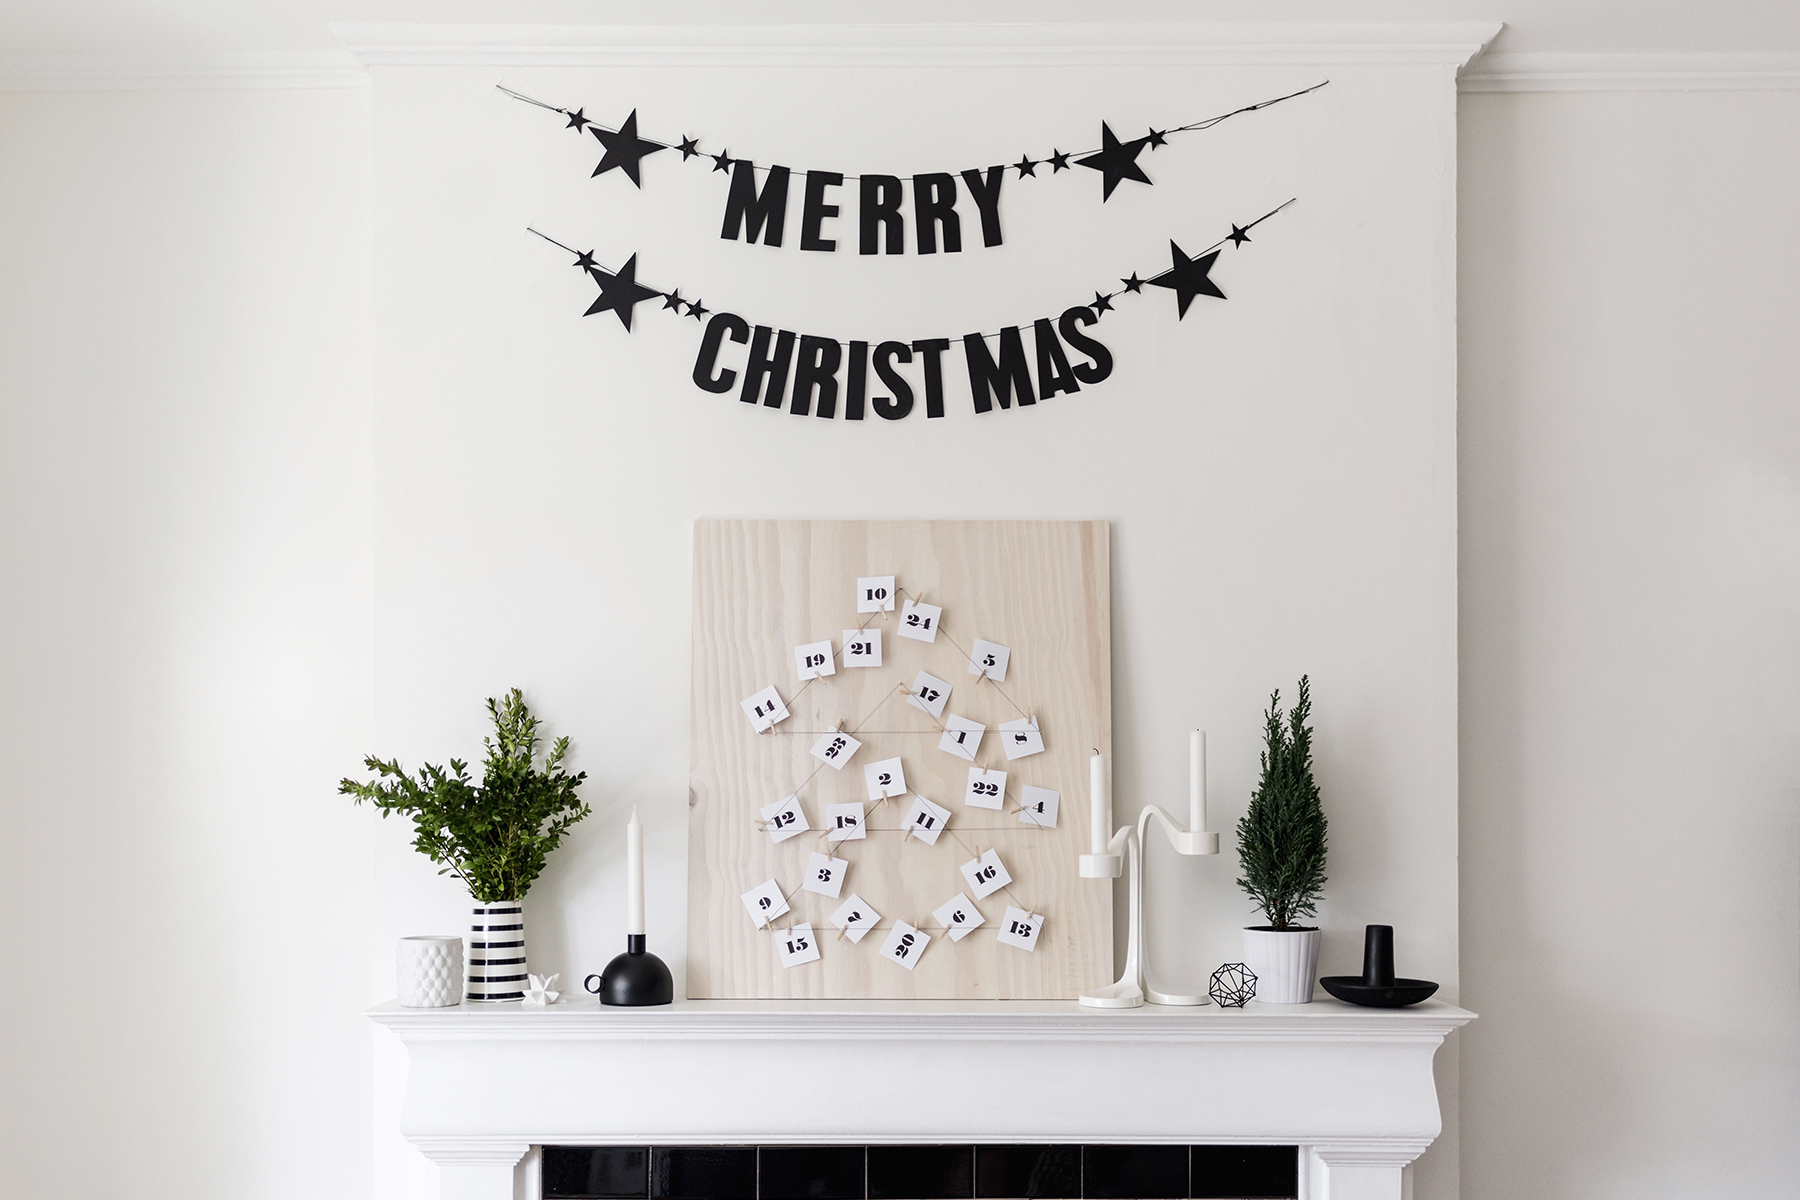 Scandinavian Christmas decor - DIY advent calendar + Merry Christmas banner | Happy Grey Lucky